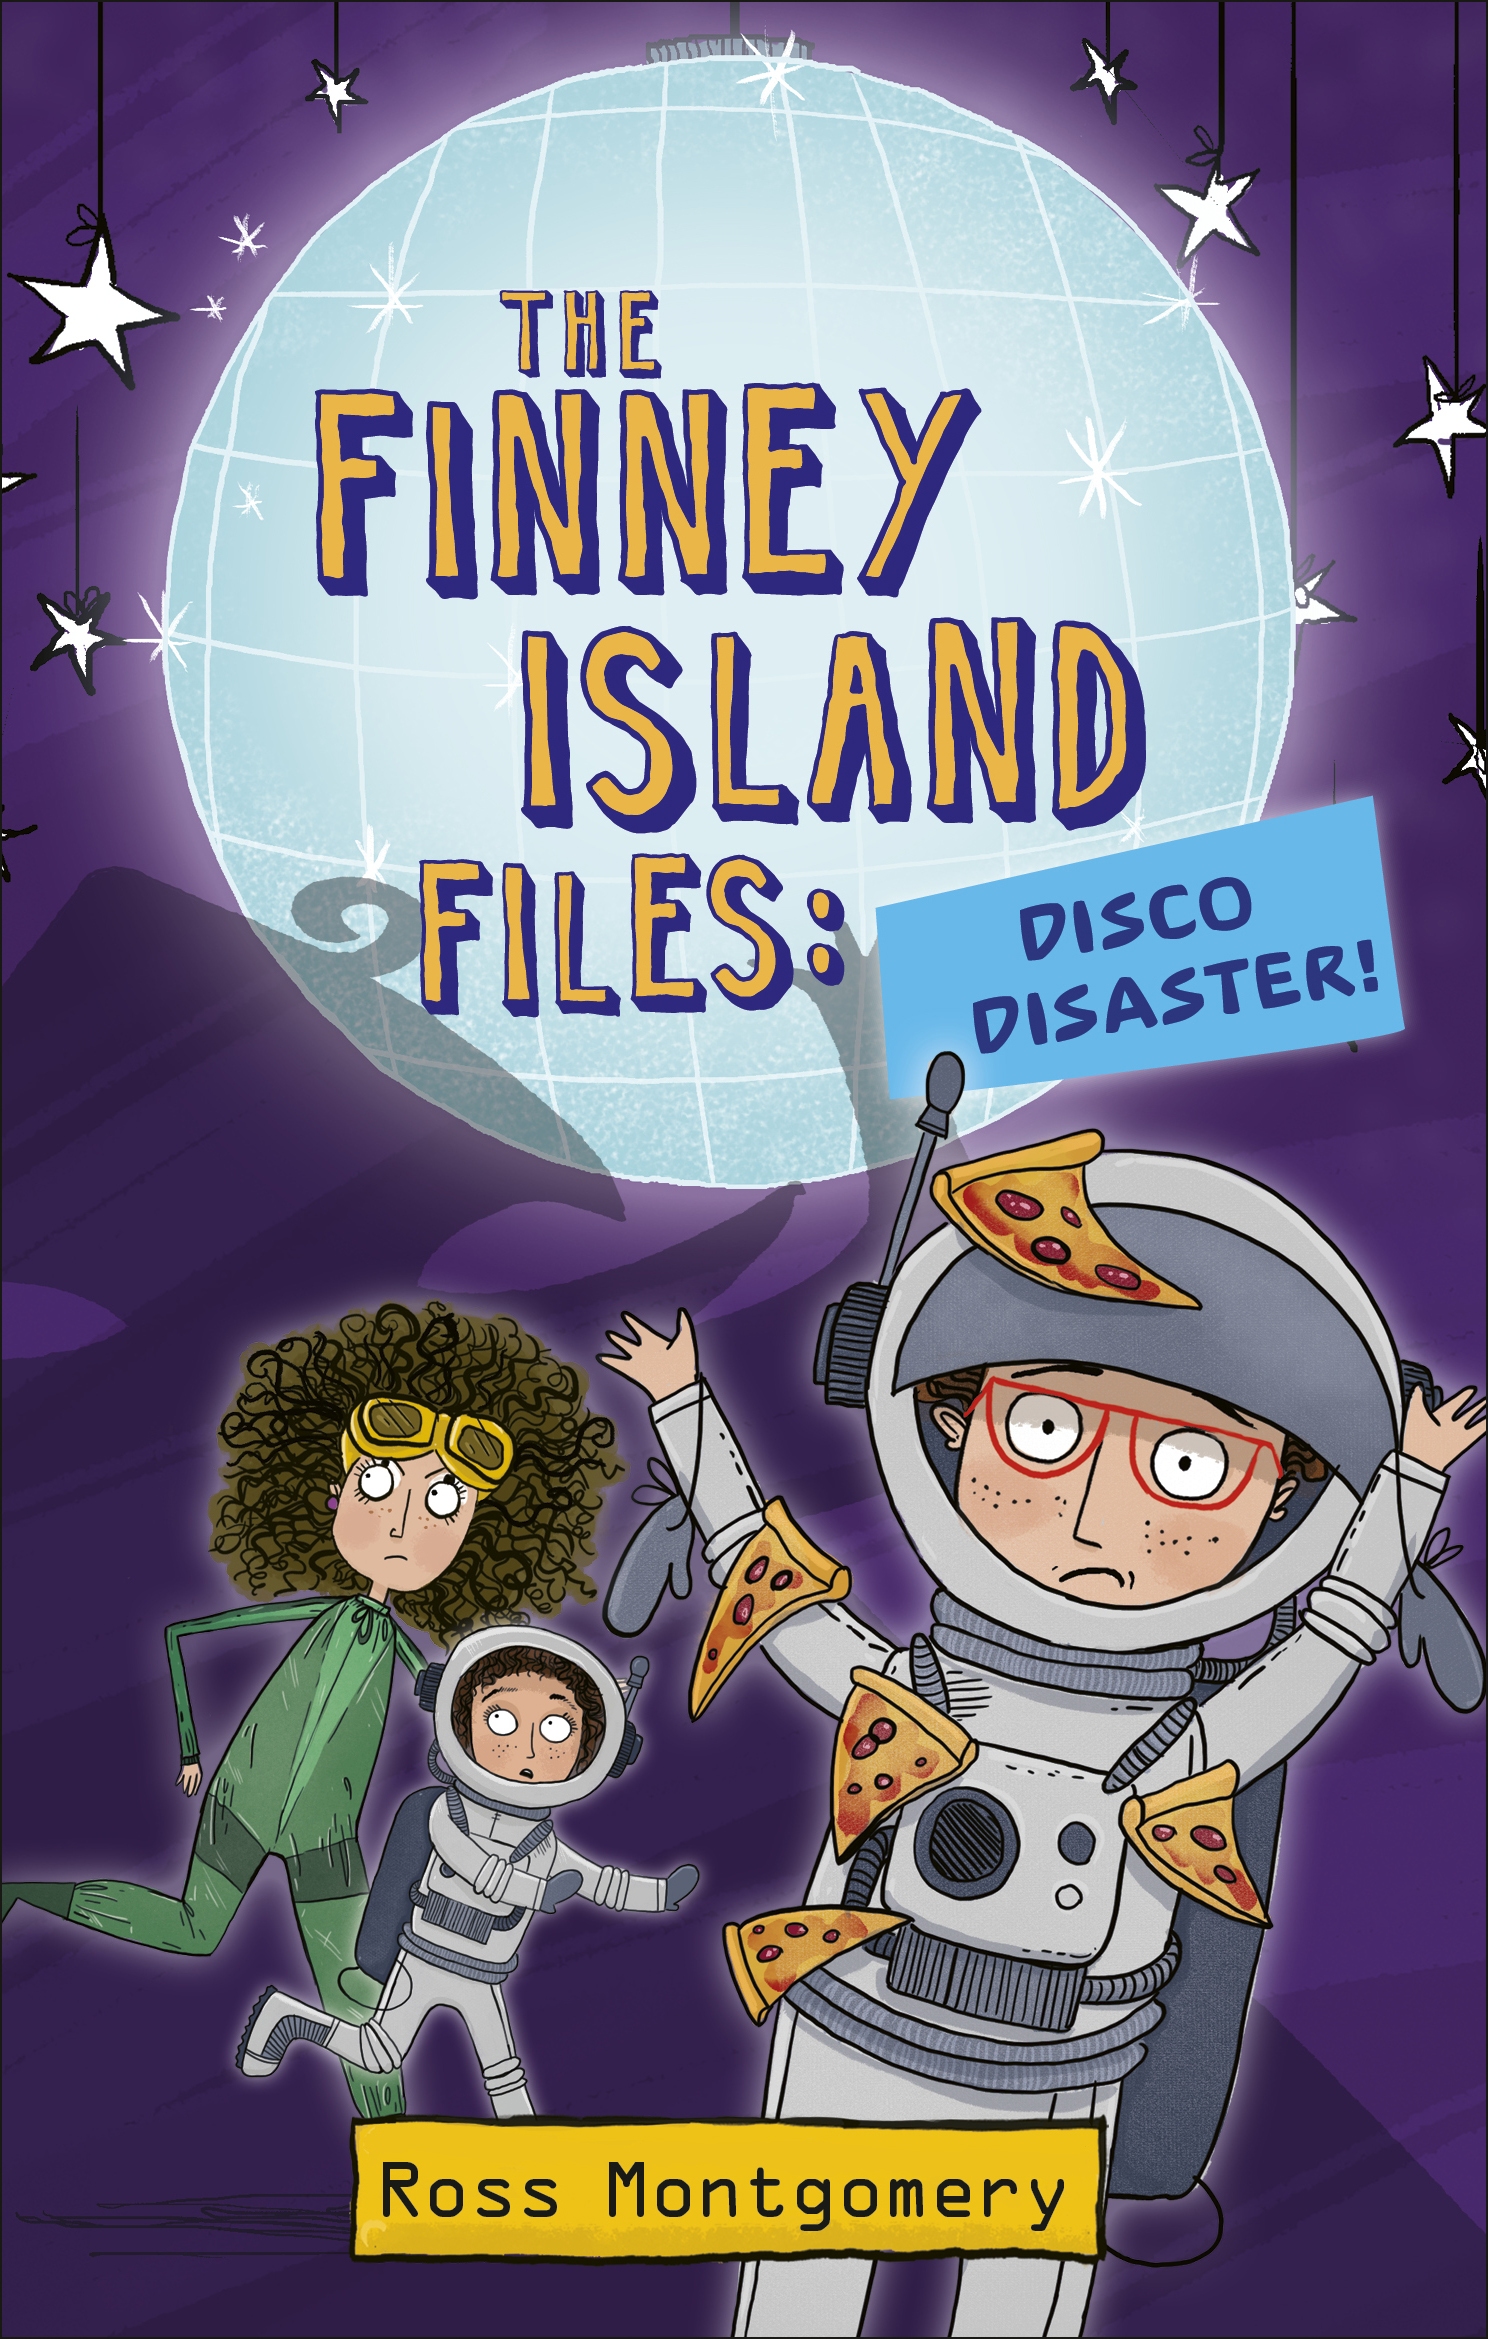 The Finney Island Files 2: Disco Disaster!